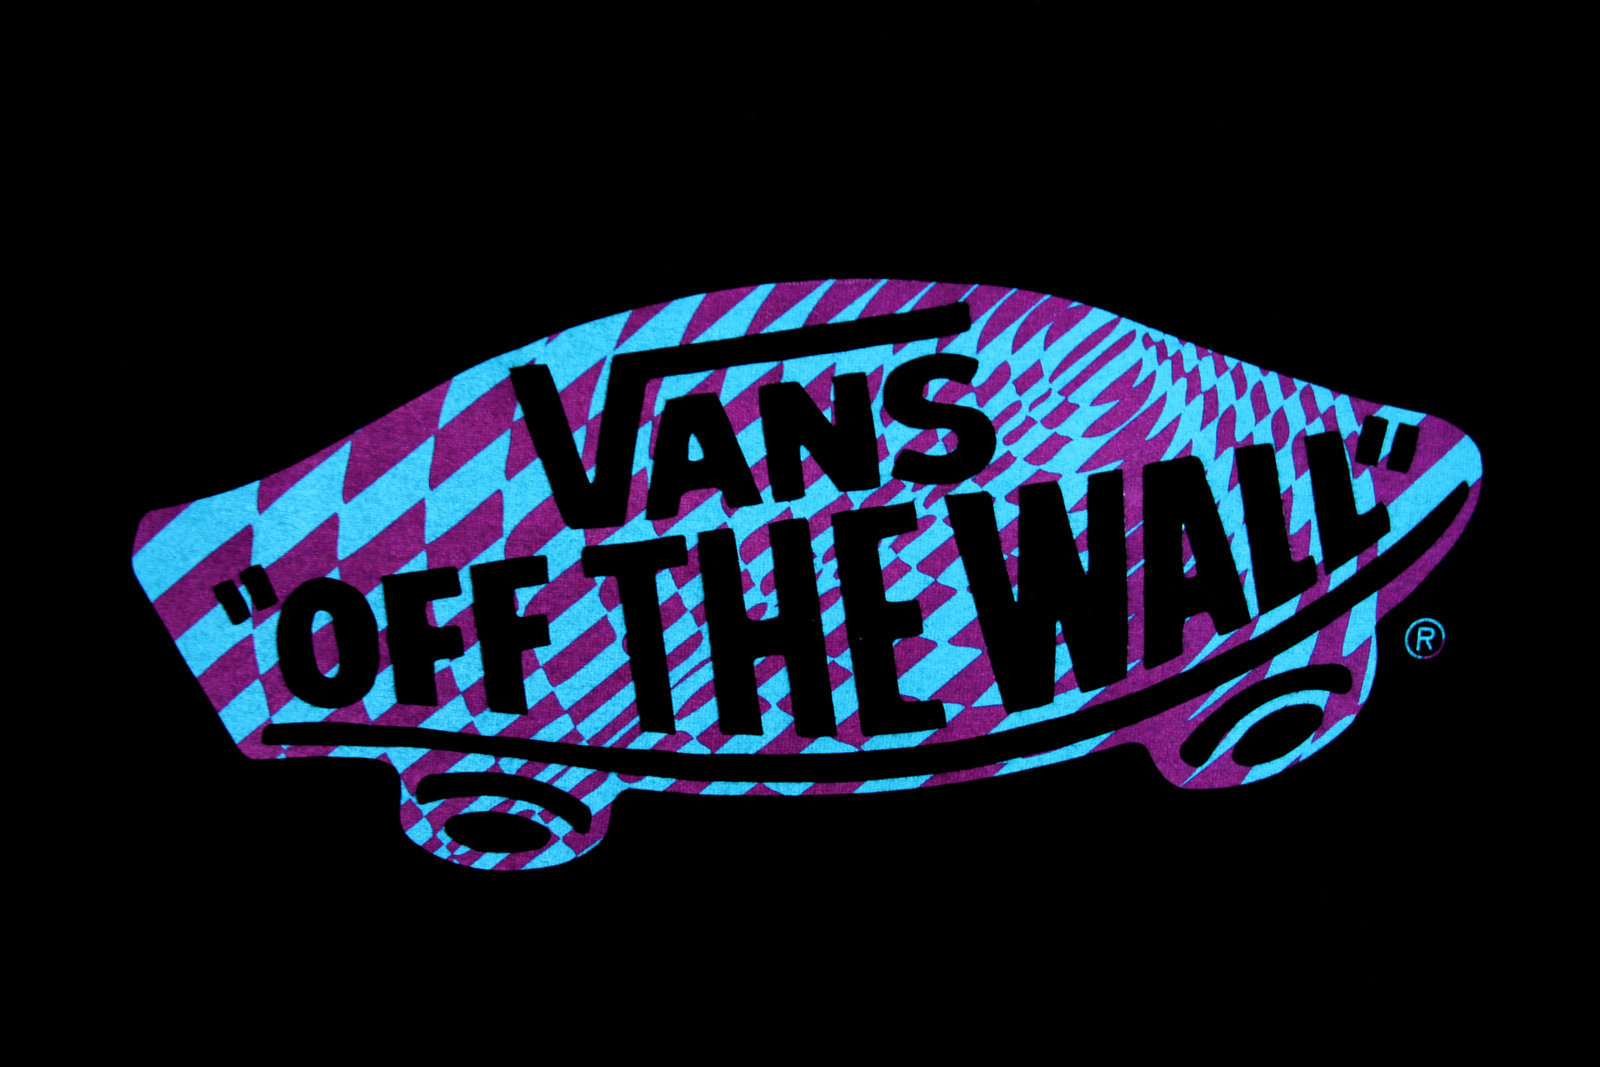 Cool Vans Logo Wallpaper Images amp Pictures   Becuo 1600x1067